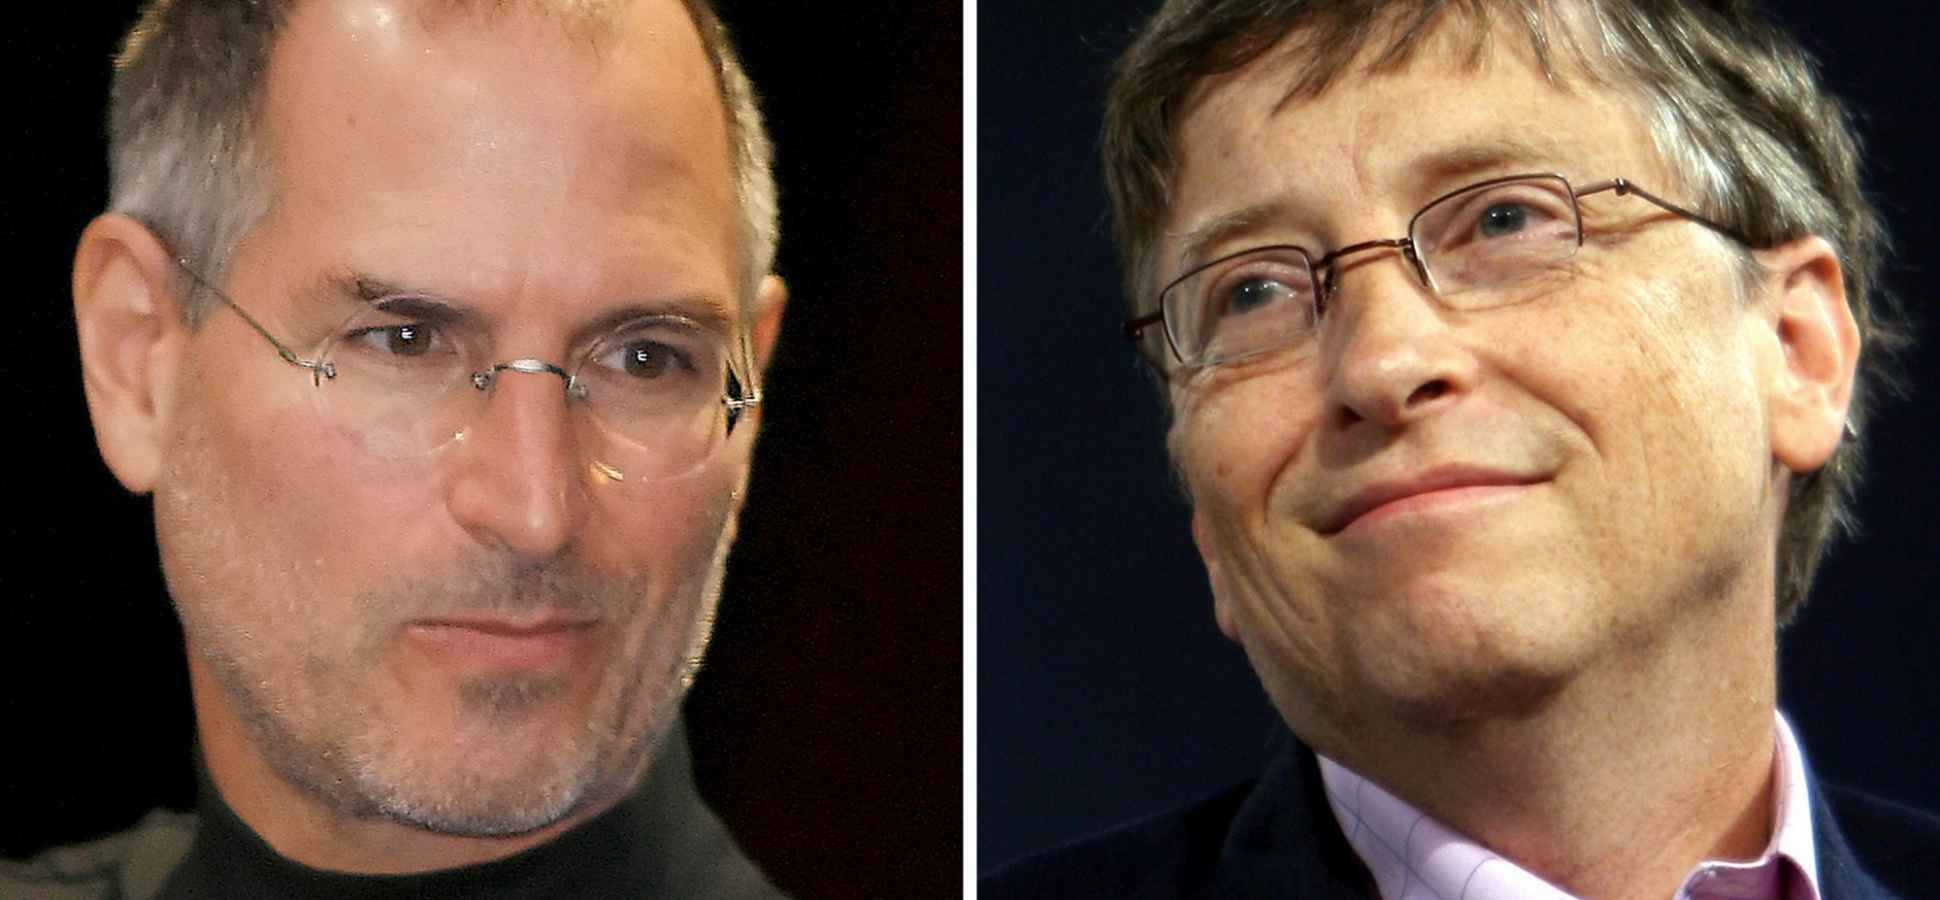 That Time Steve Jobs and Bill Gates Argued About the Future of Computers